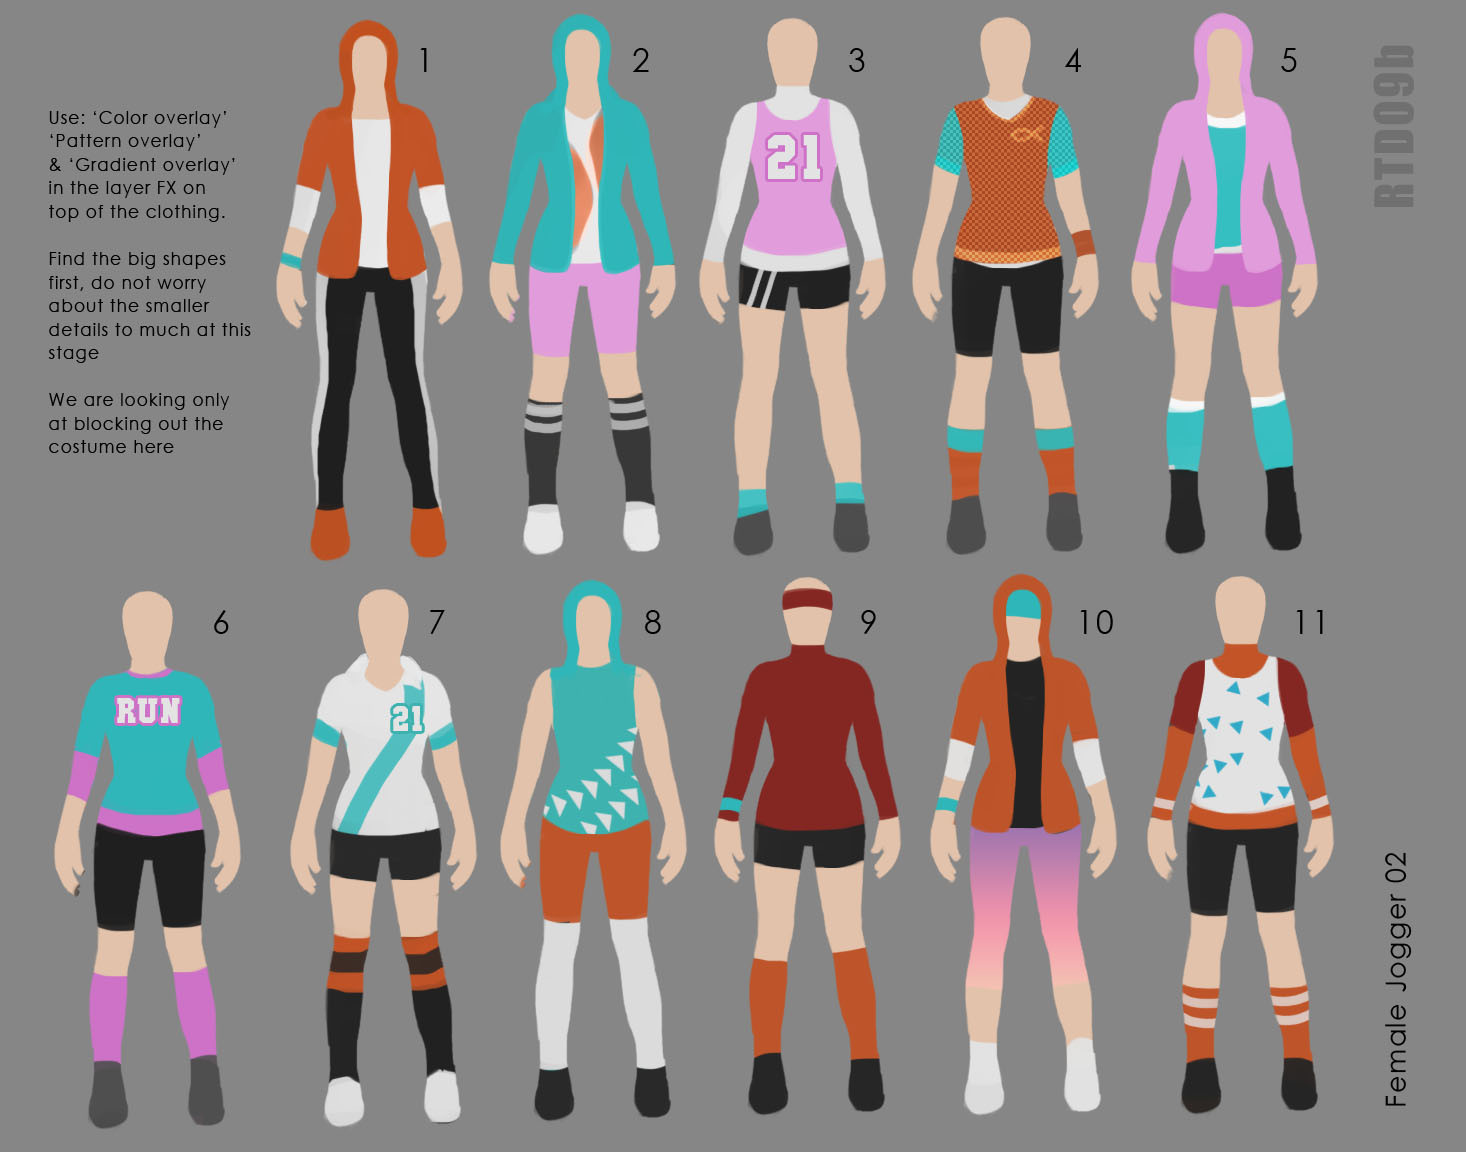 Paper Doll Shapes Colour blocking